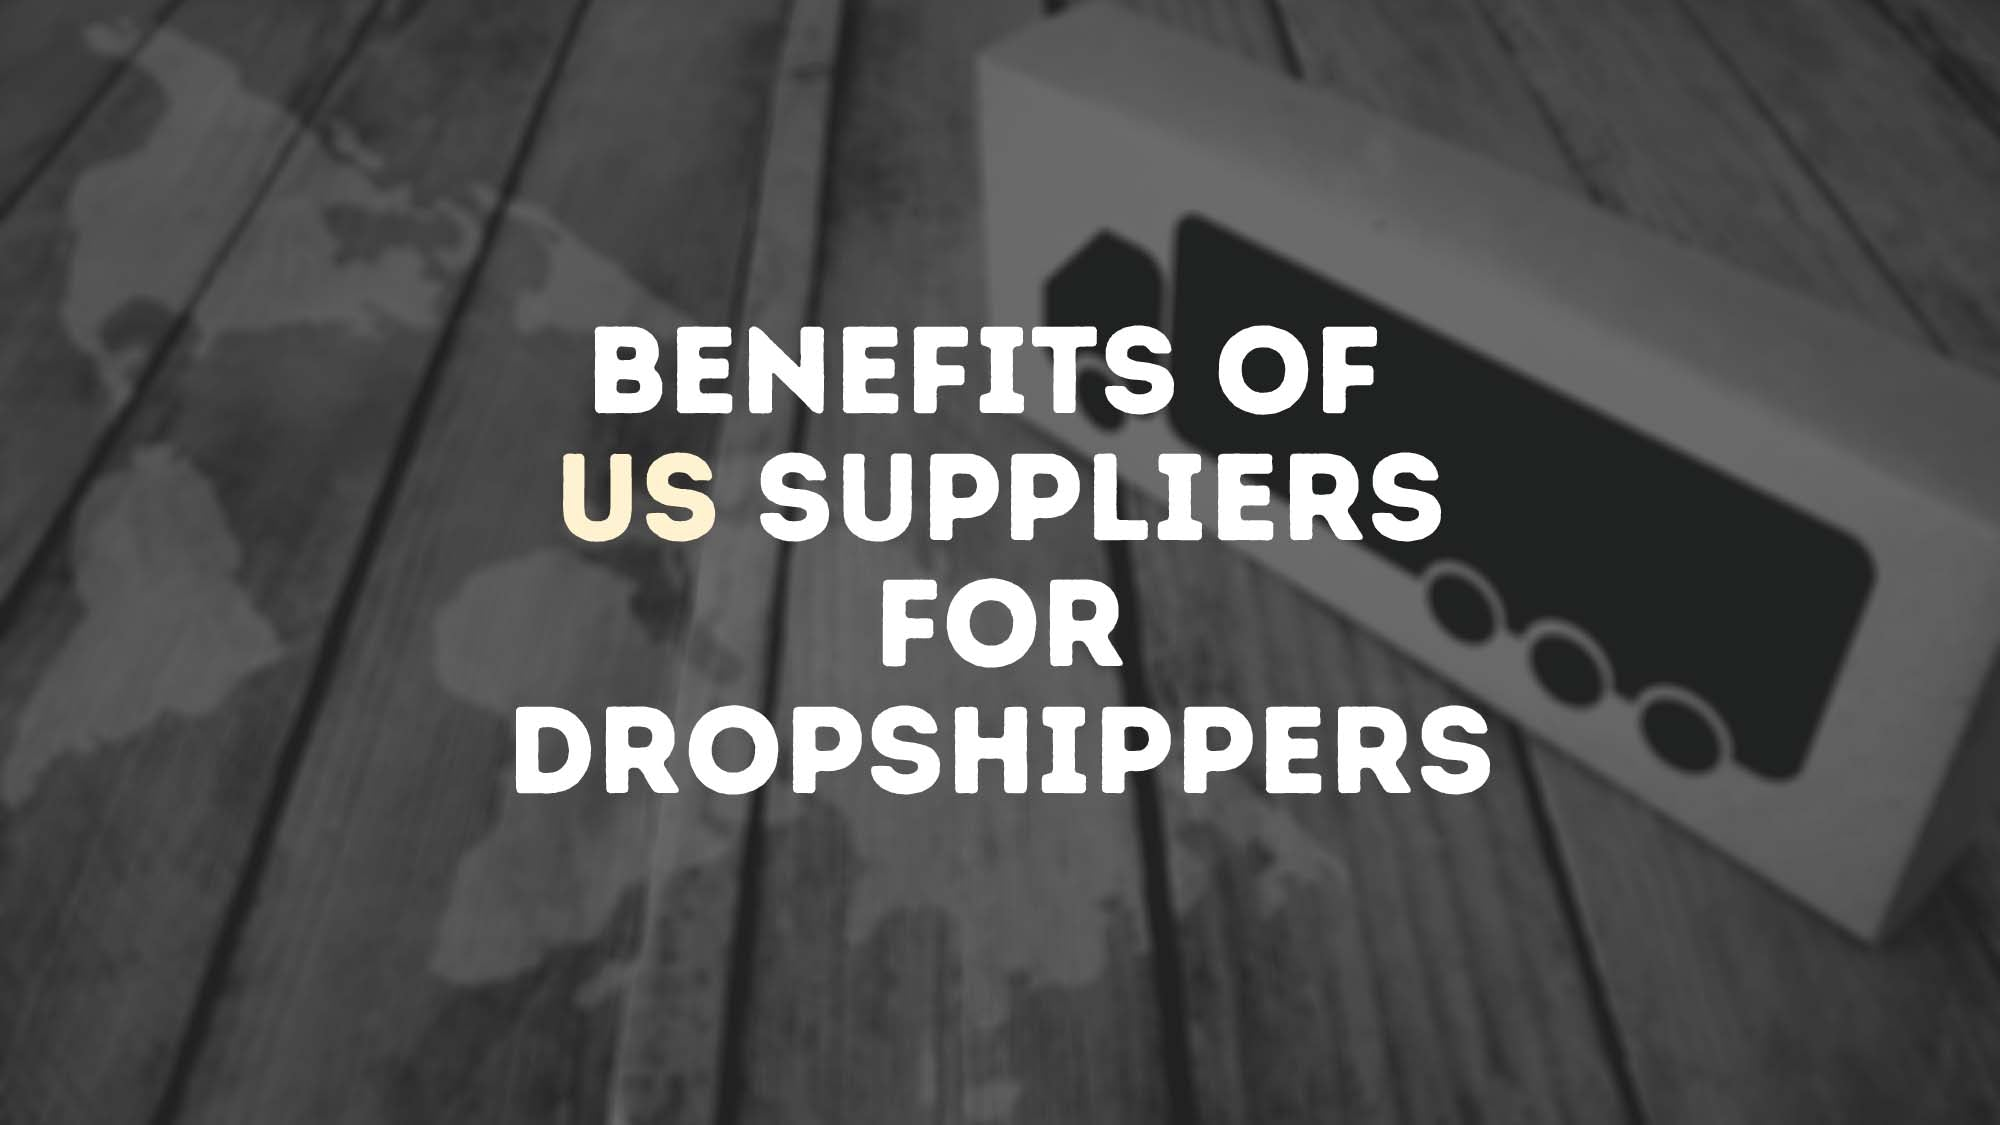 Benefits Of US Suppliers For Dropshippers - DropshipUSA